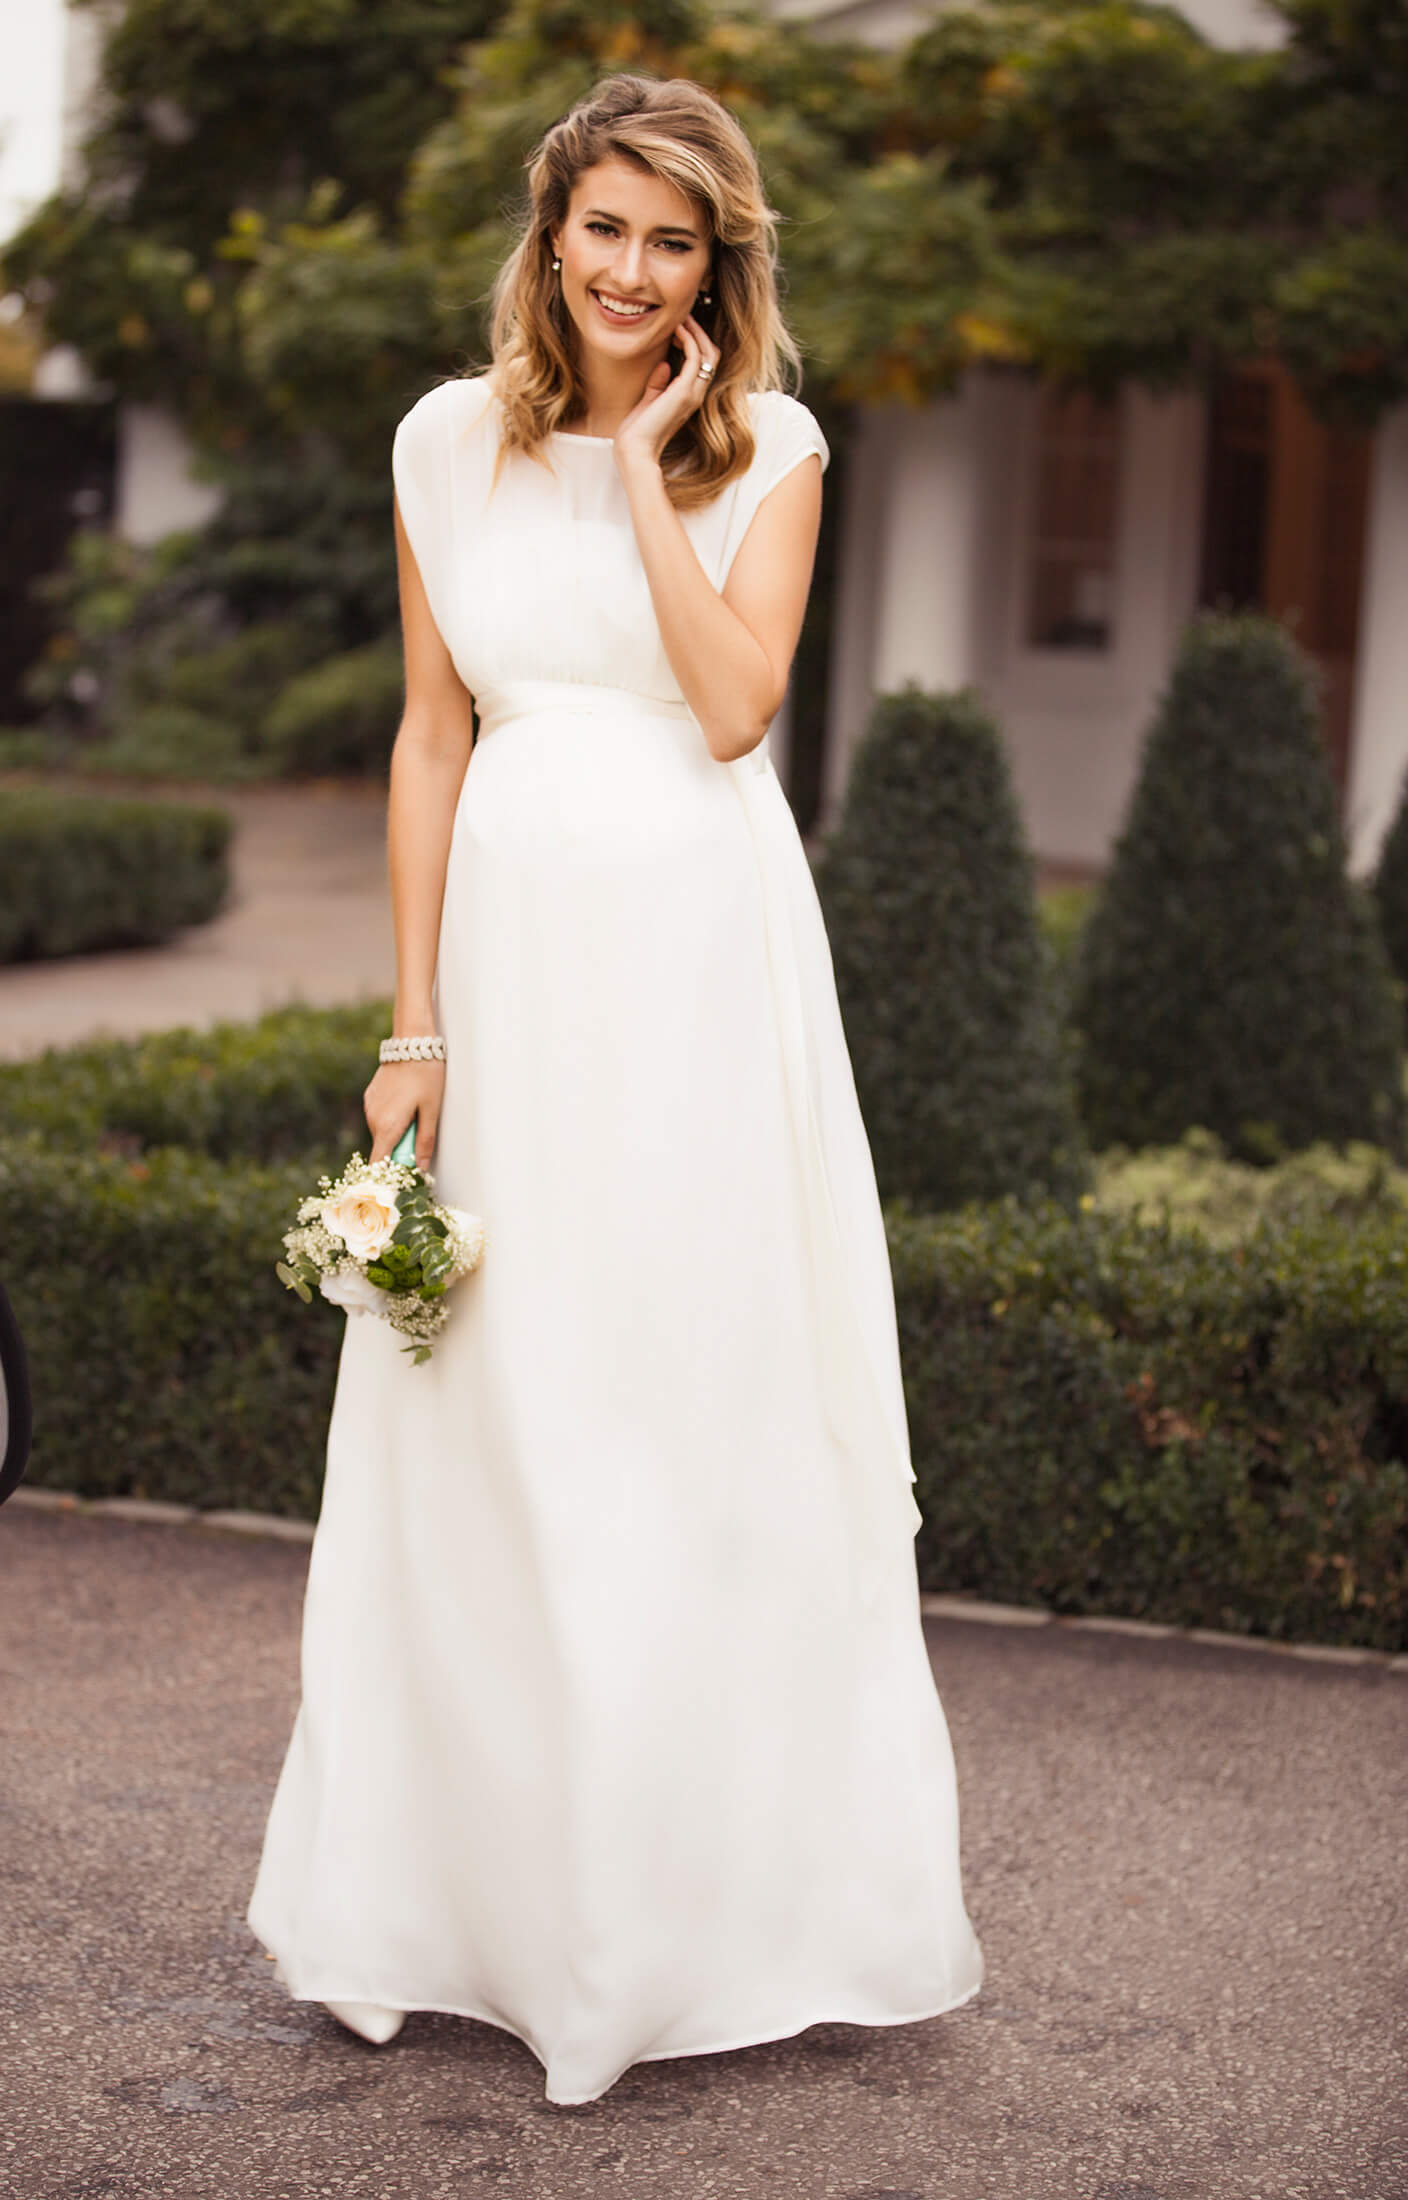 Maya maternity wedding gown long ivory maternity wedding dresses maya maternity wedding gown long ivory by tiffany rose ombrellifo Gallery